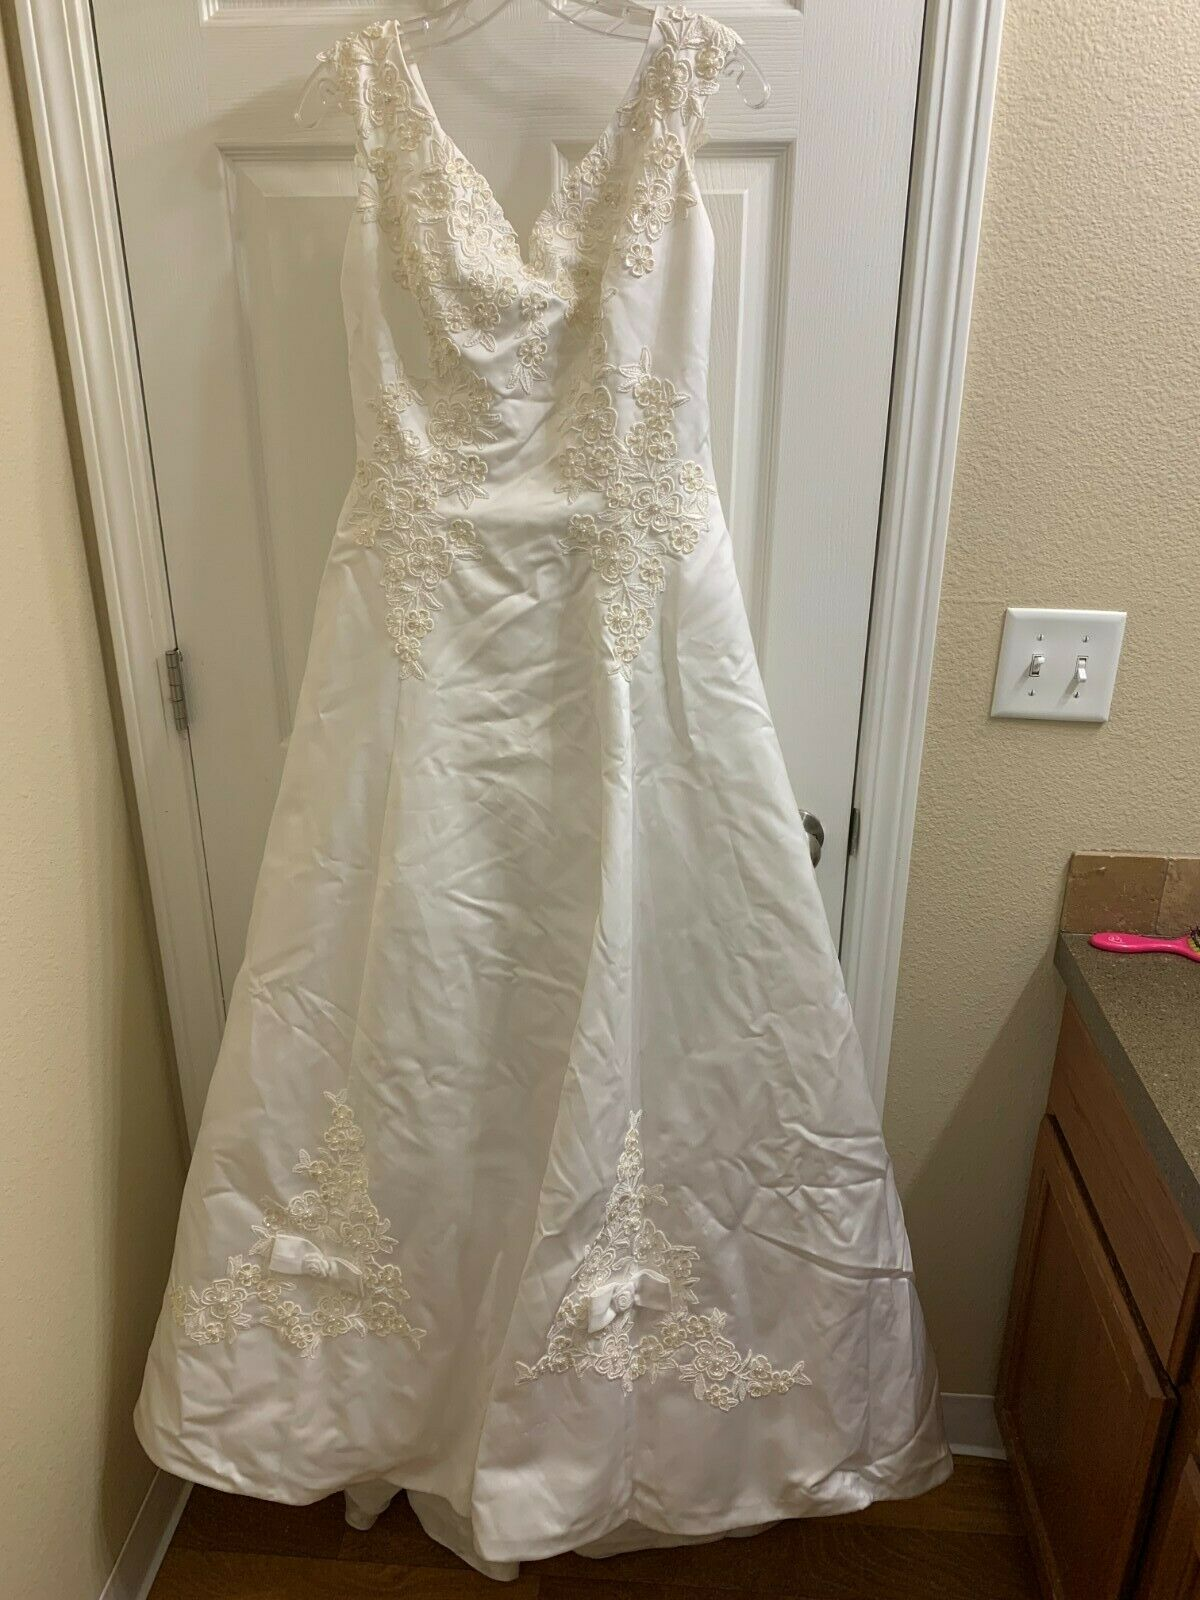 Michelangelo Ball Gown Style Satin Embroidered Sequined Wedding Dress Size 16